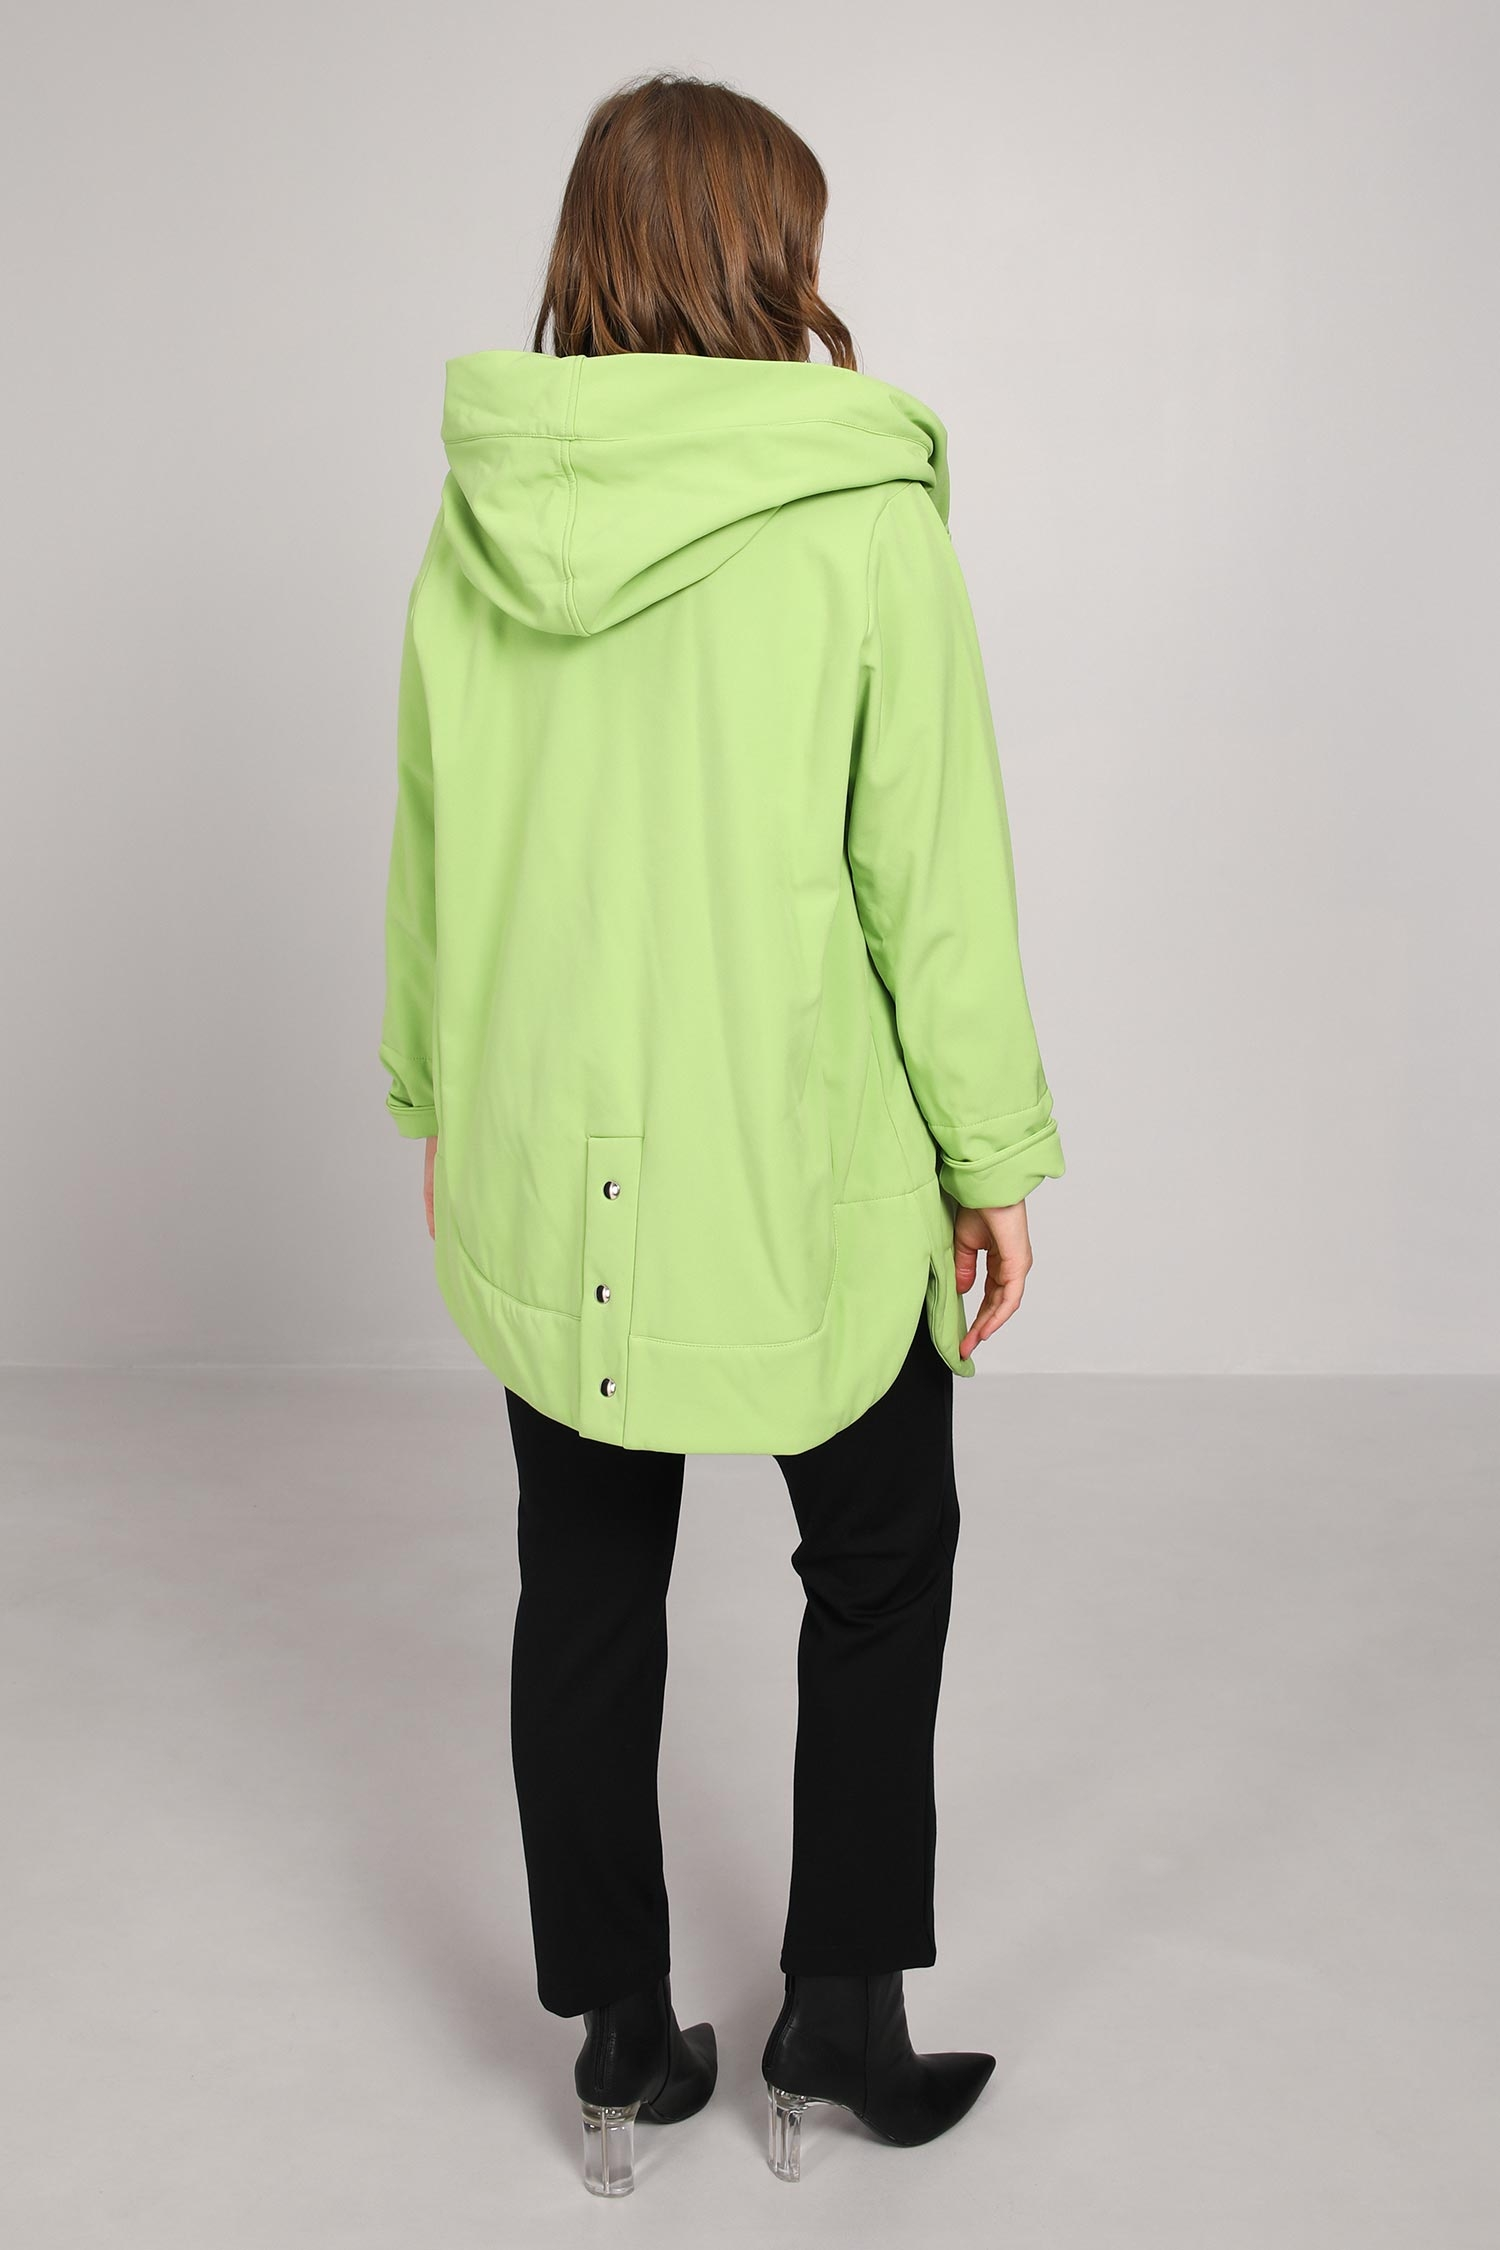 7/8 hooded coat